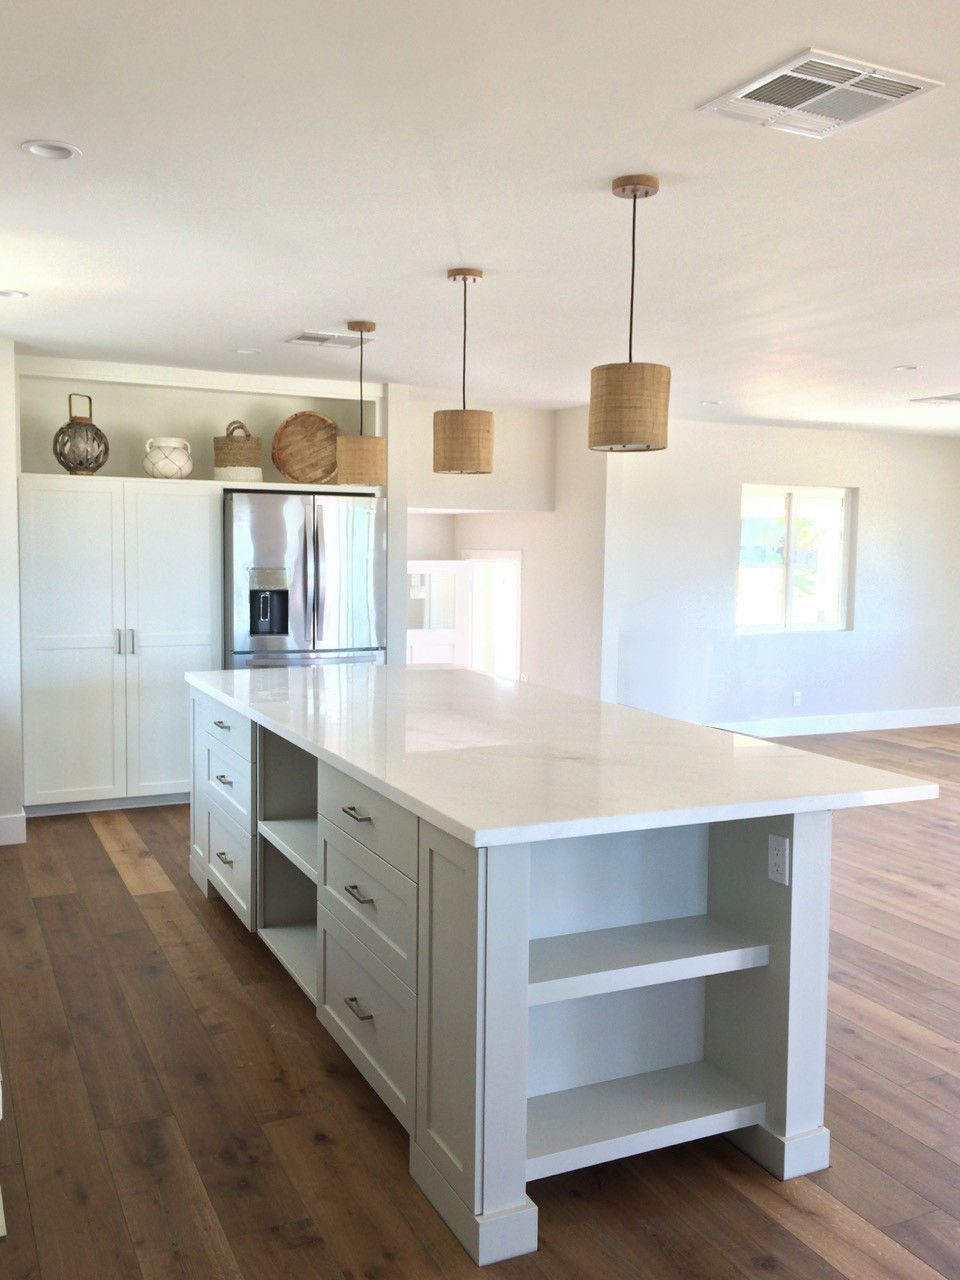 great room kitchen open concept with large island white and gray rh in pinterest com